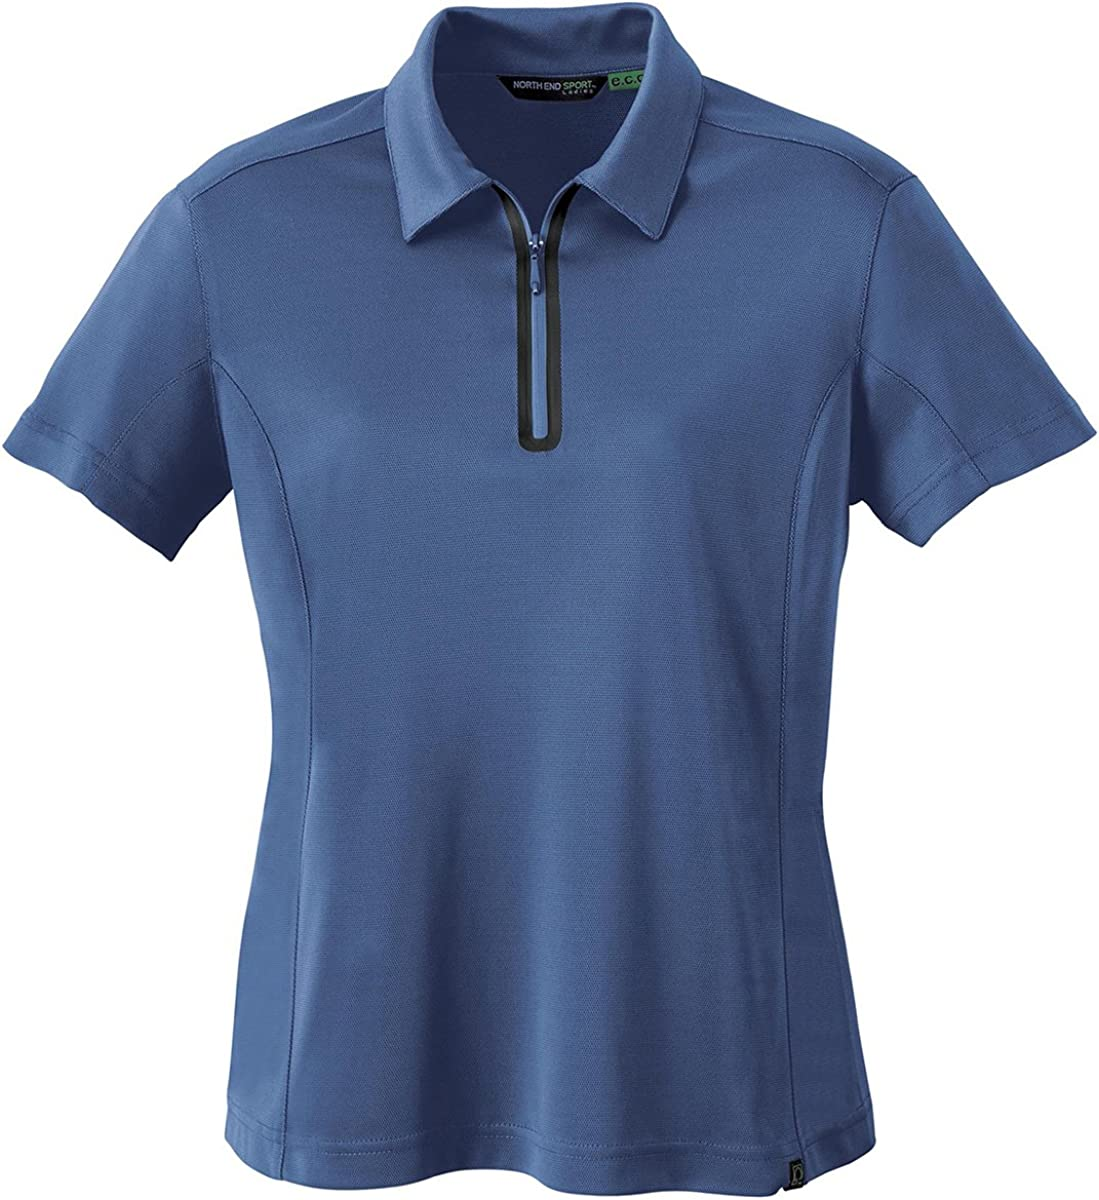 North End 78629 LADIES' RECYCLED POLYESTER/PERFORMANCE POLYESTER ZIPPED POLO - DUTCH BLUE 641 - XS